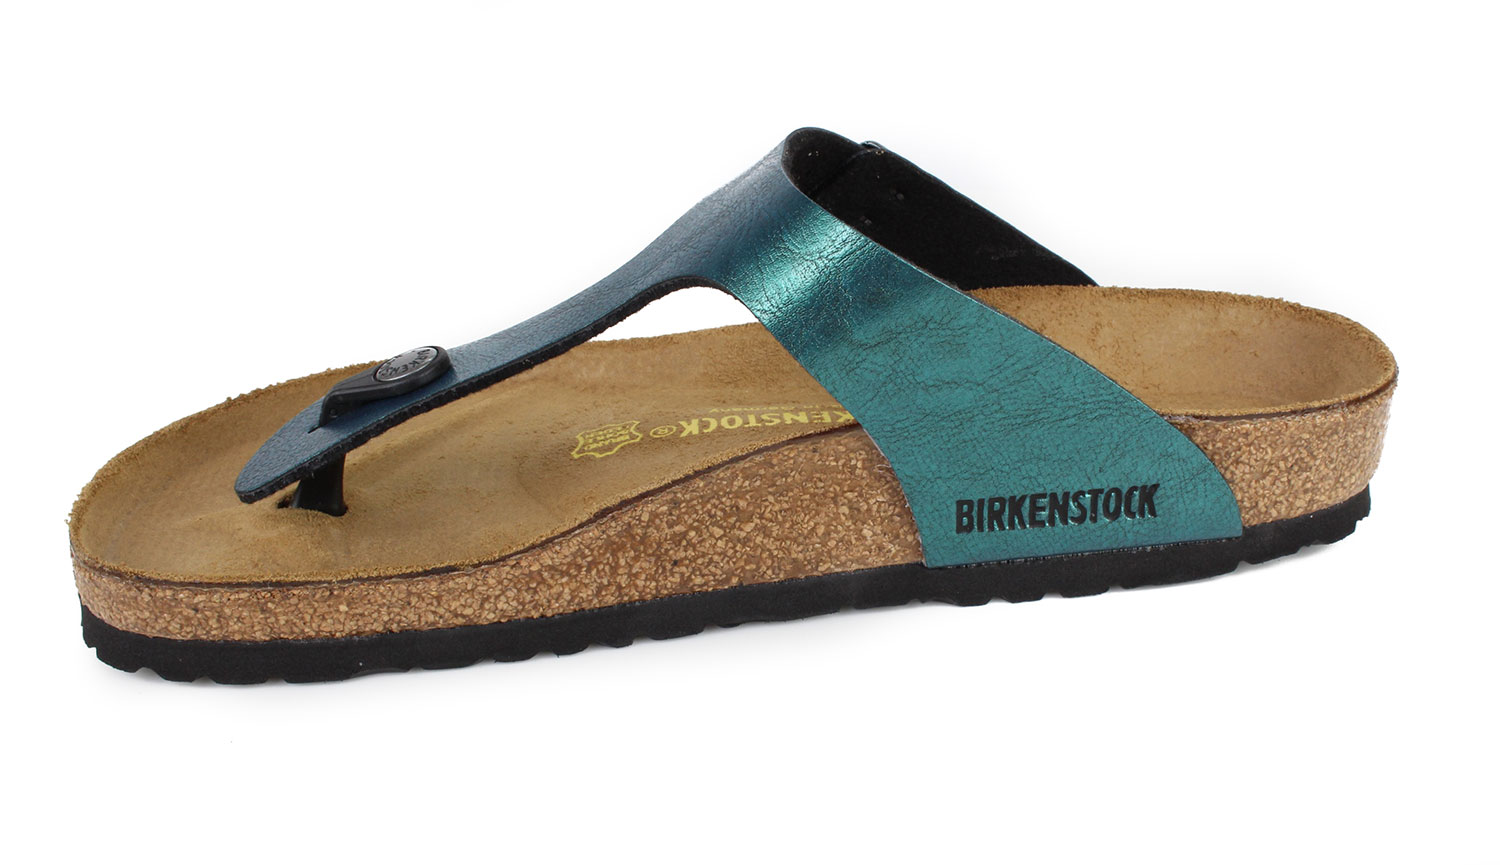 Birkenstock-Gizeh-Birko-Flor-Womens-Shoes-Slides-Sandals-anatomical-footbed-NEW thumbnail 19